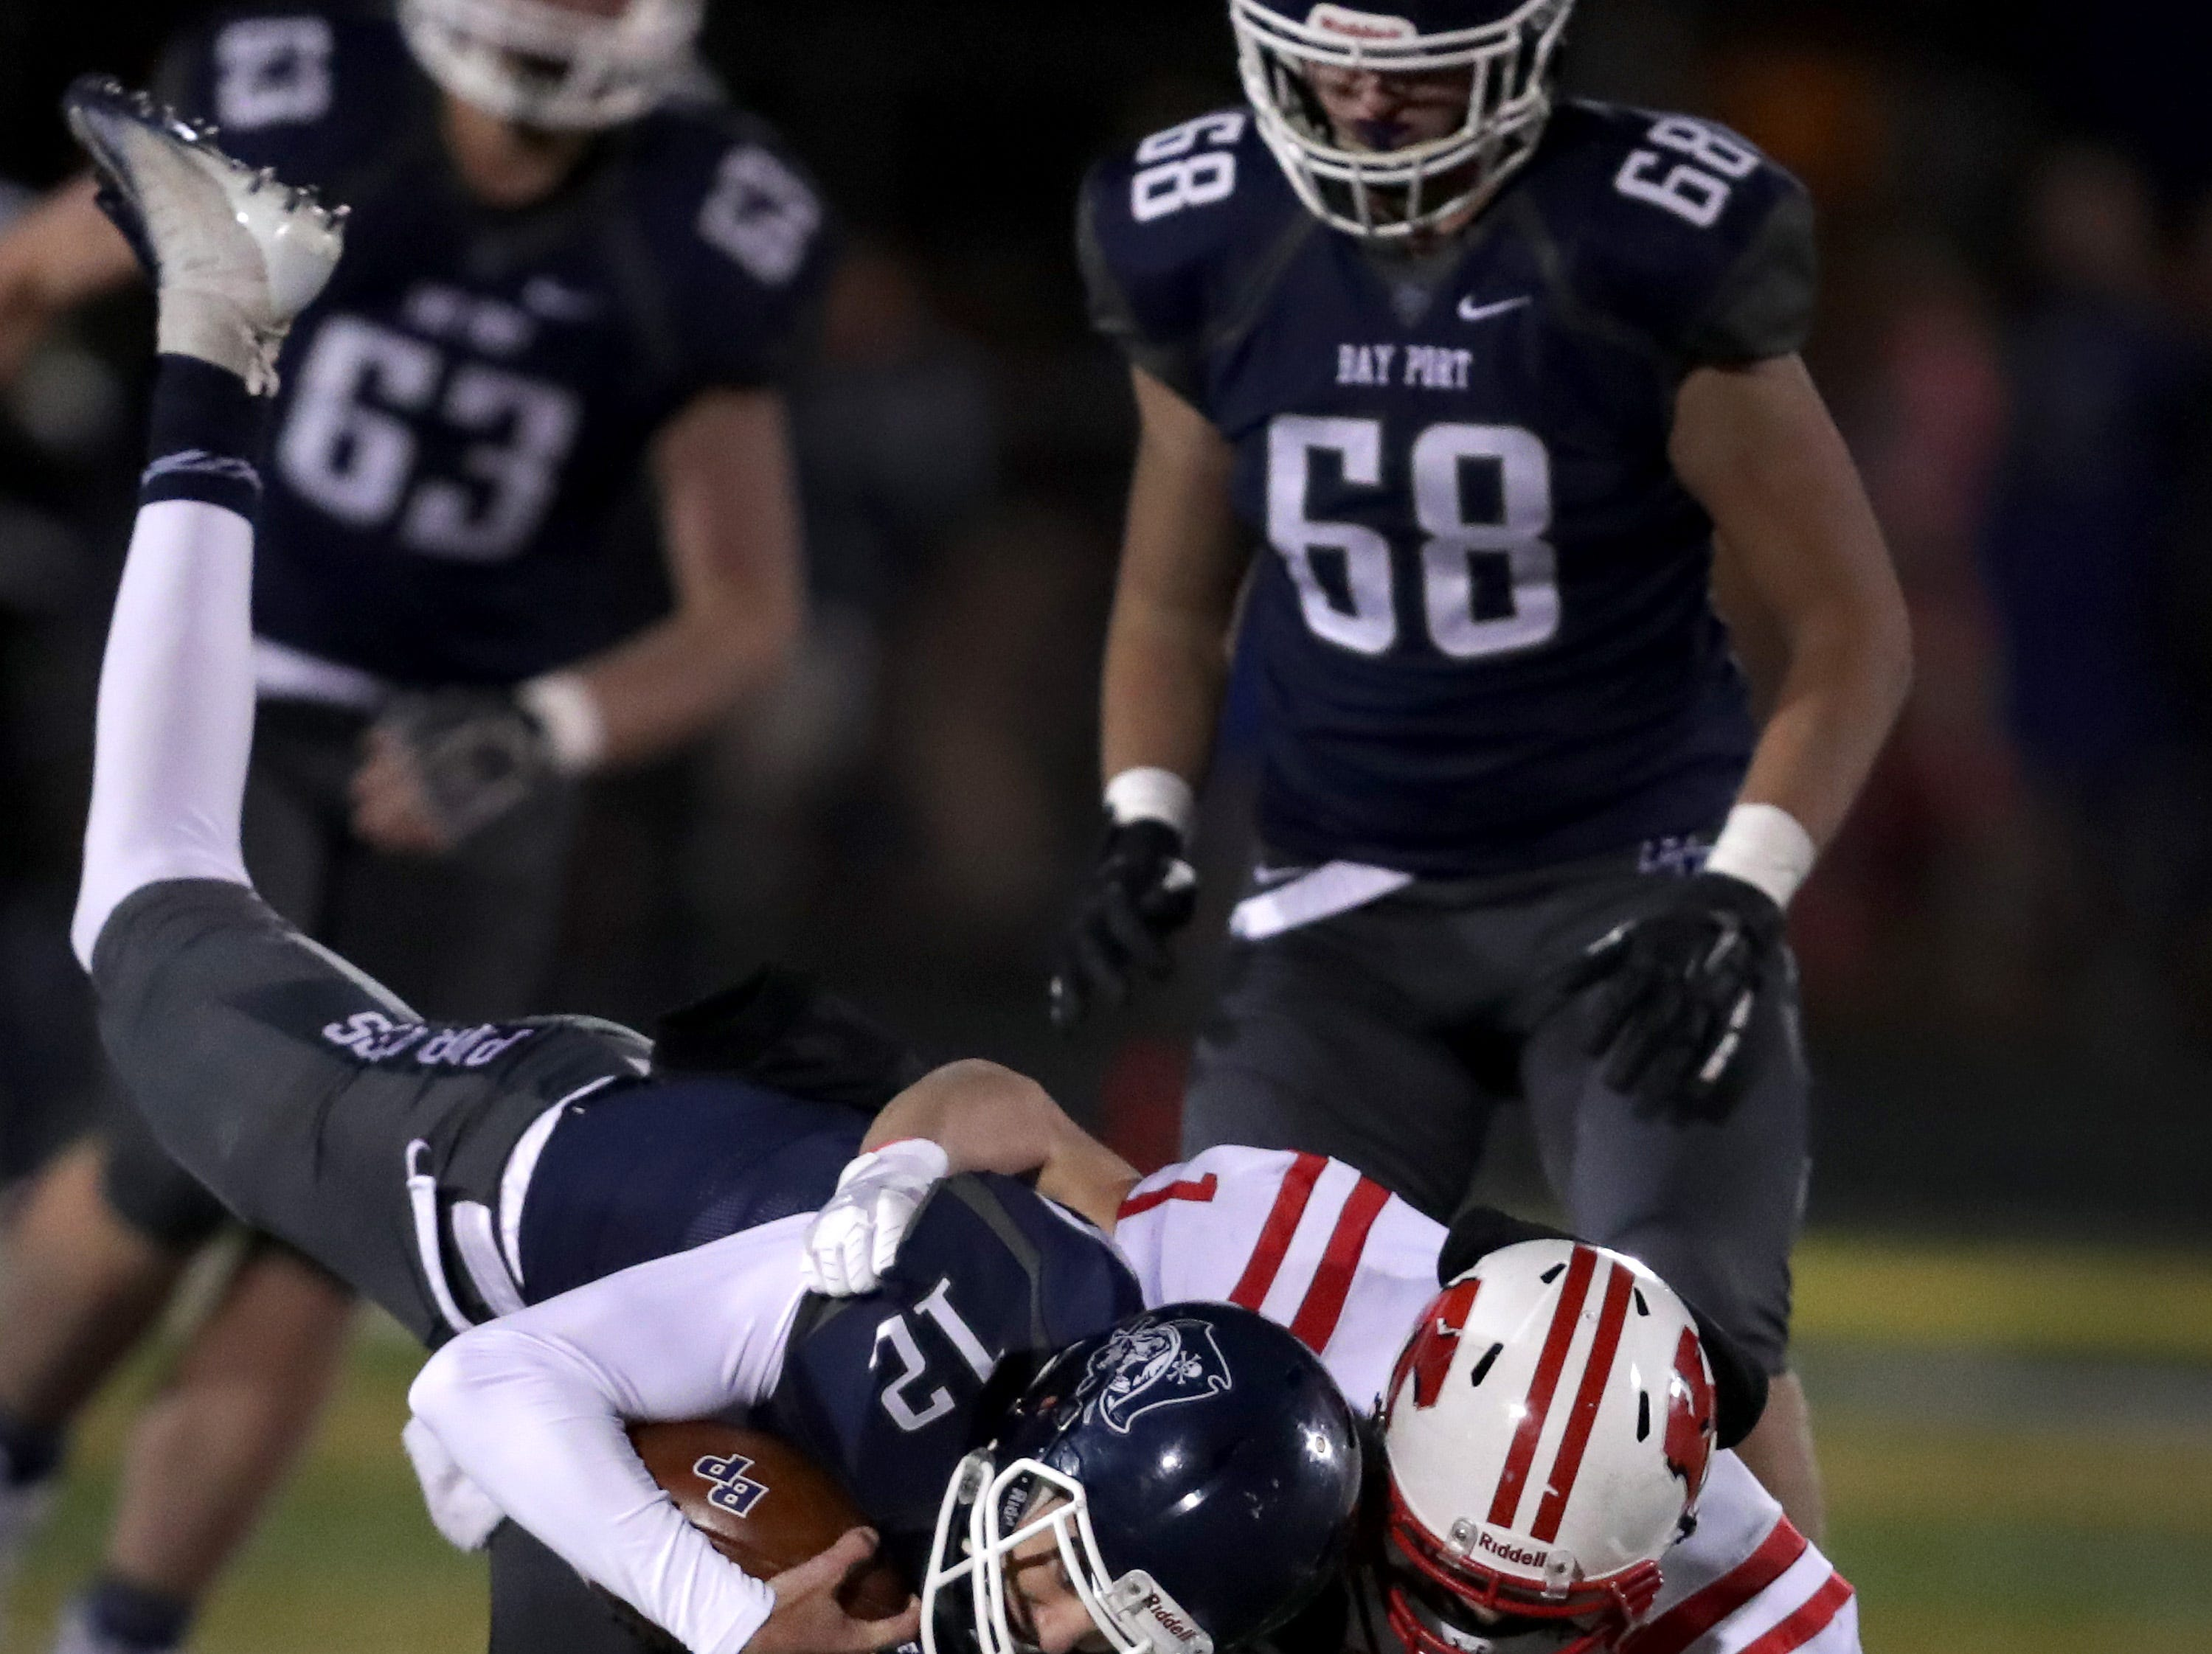 Bayport High School's #12 Andrew Thomas is tackled by Kimberly High School's #1 Caleb Obermann during their WIAA Division 1 state quarterfinal football game on Friday, November 1, 2018, in Green Bay, Wis.  Kimberly defeated Bayport 38 to 20.